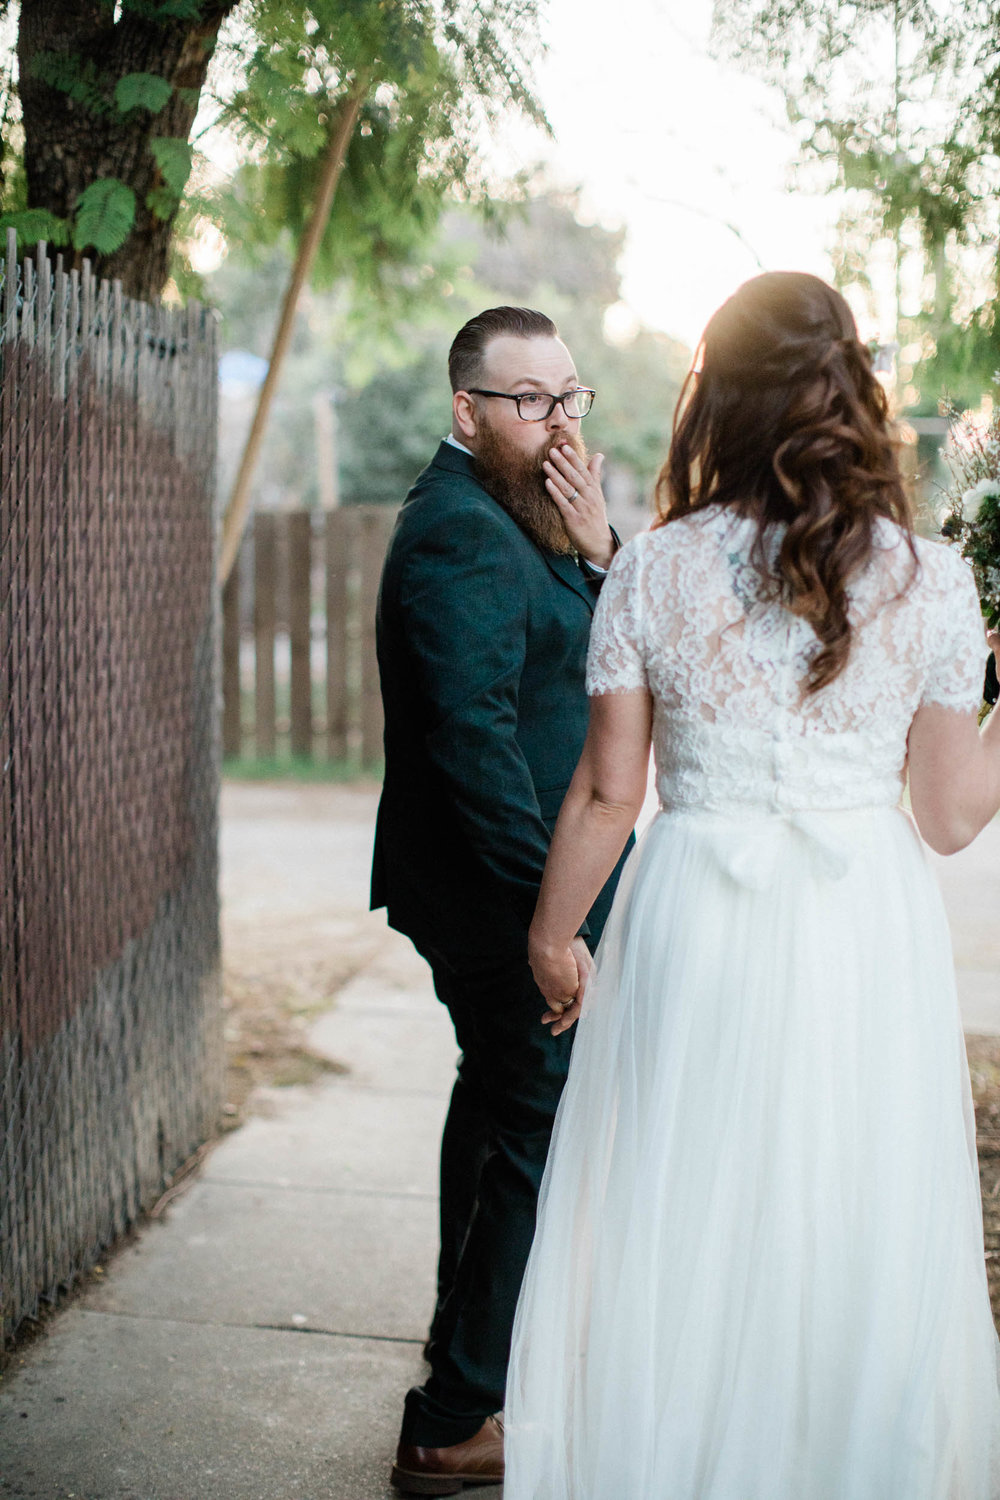 BKM-Photography-Highland-Park-Los-Angeles-Backyard-DIY-Wedding-0110.jpg